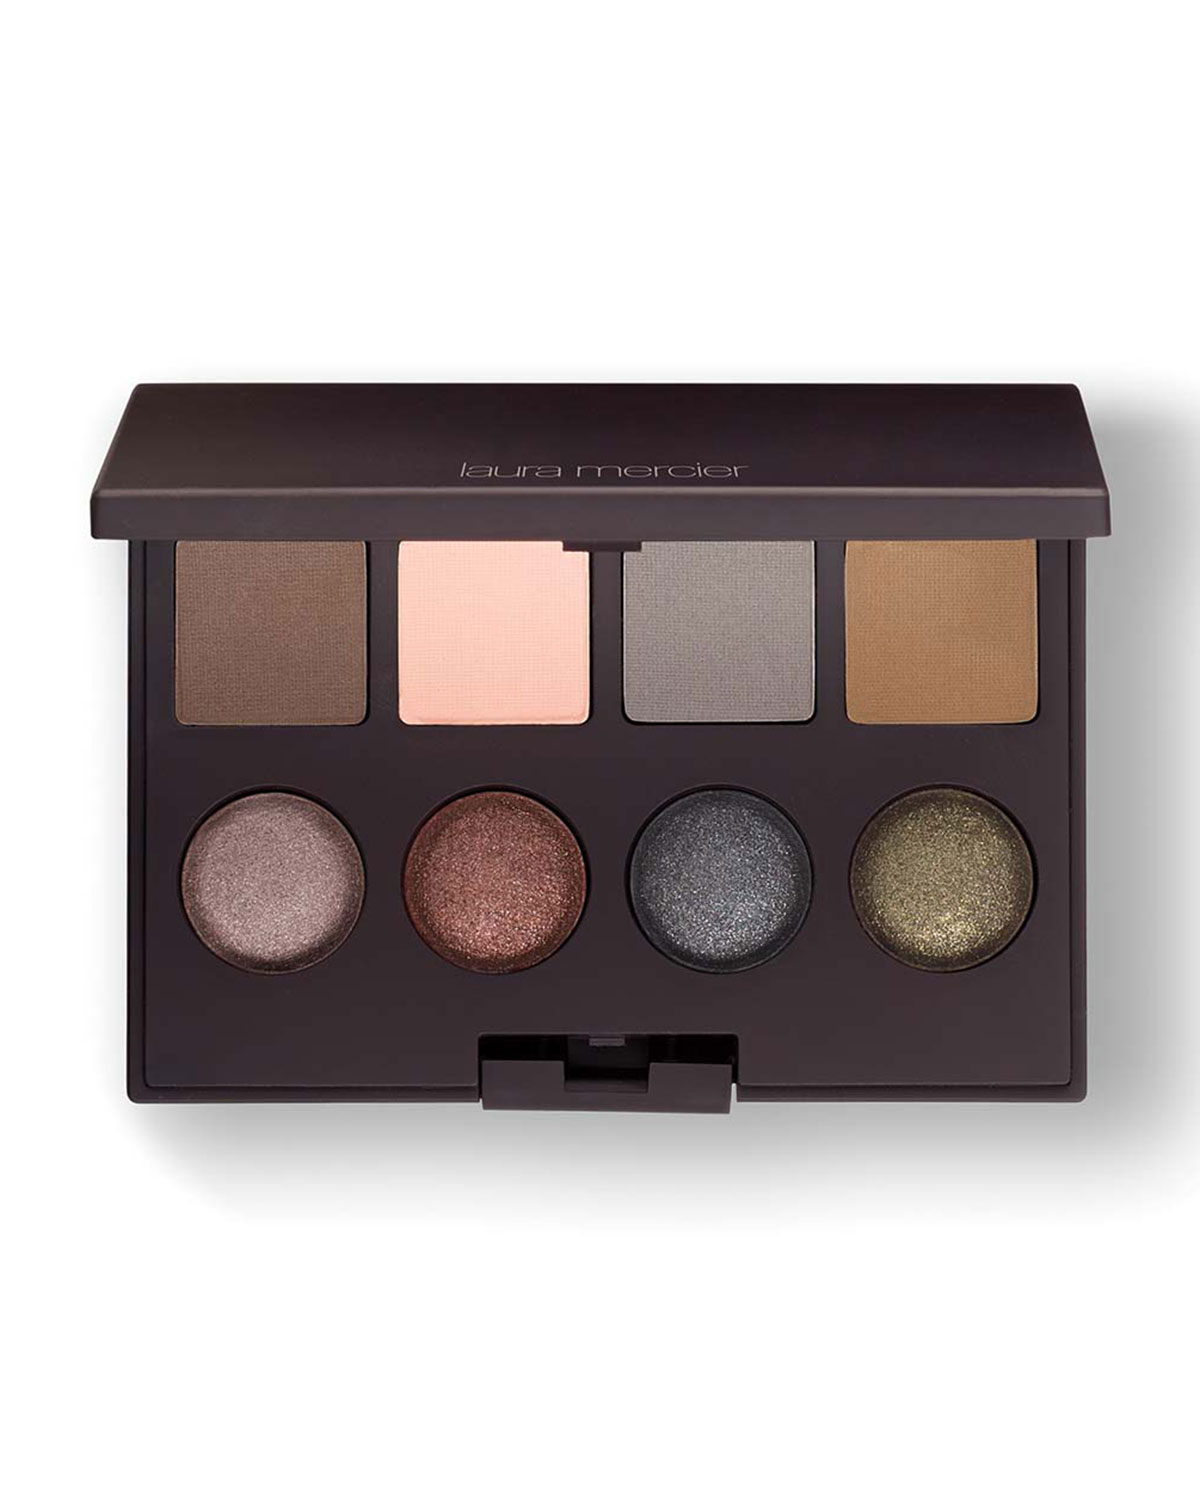 Limited Edition Paris After the Rain Eye Colour Collection